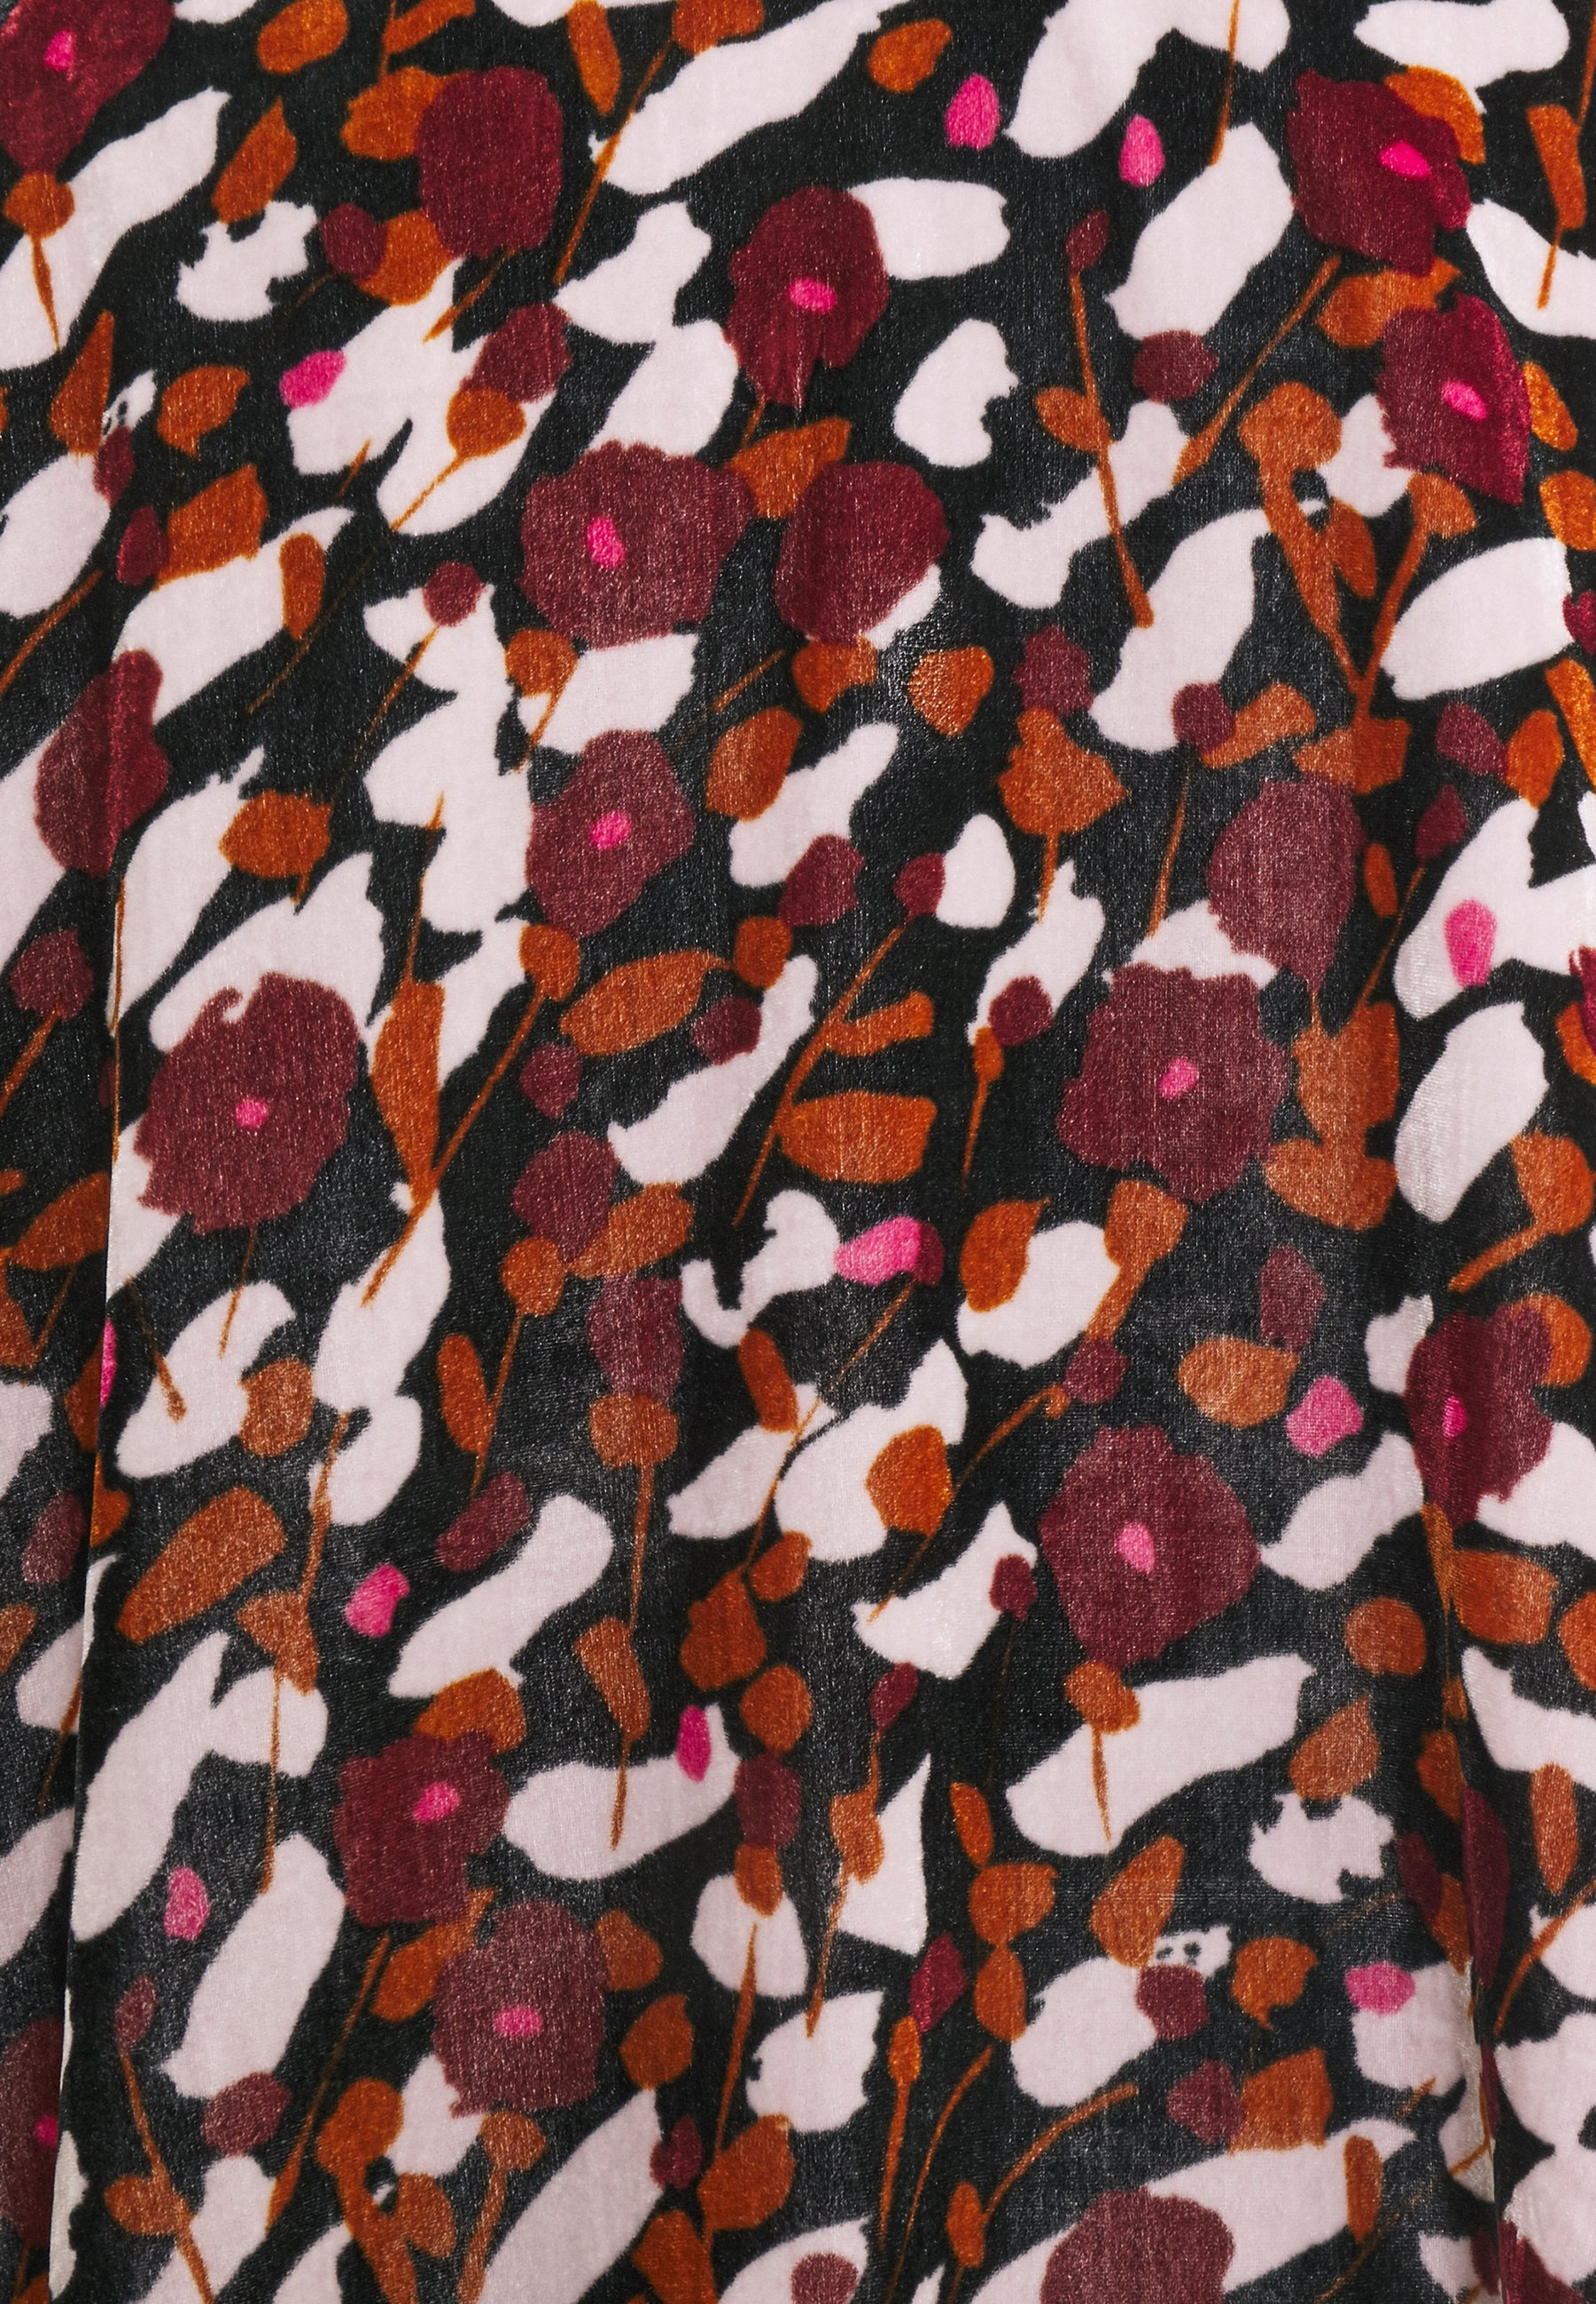 Marimekko KUMPARE KESÄHEINÄ DRESS Freizeitkleid rose/black/rosa